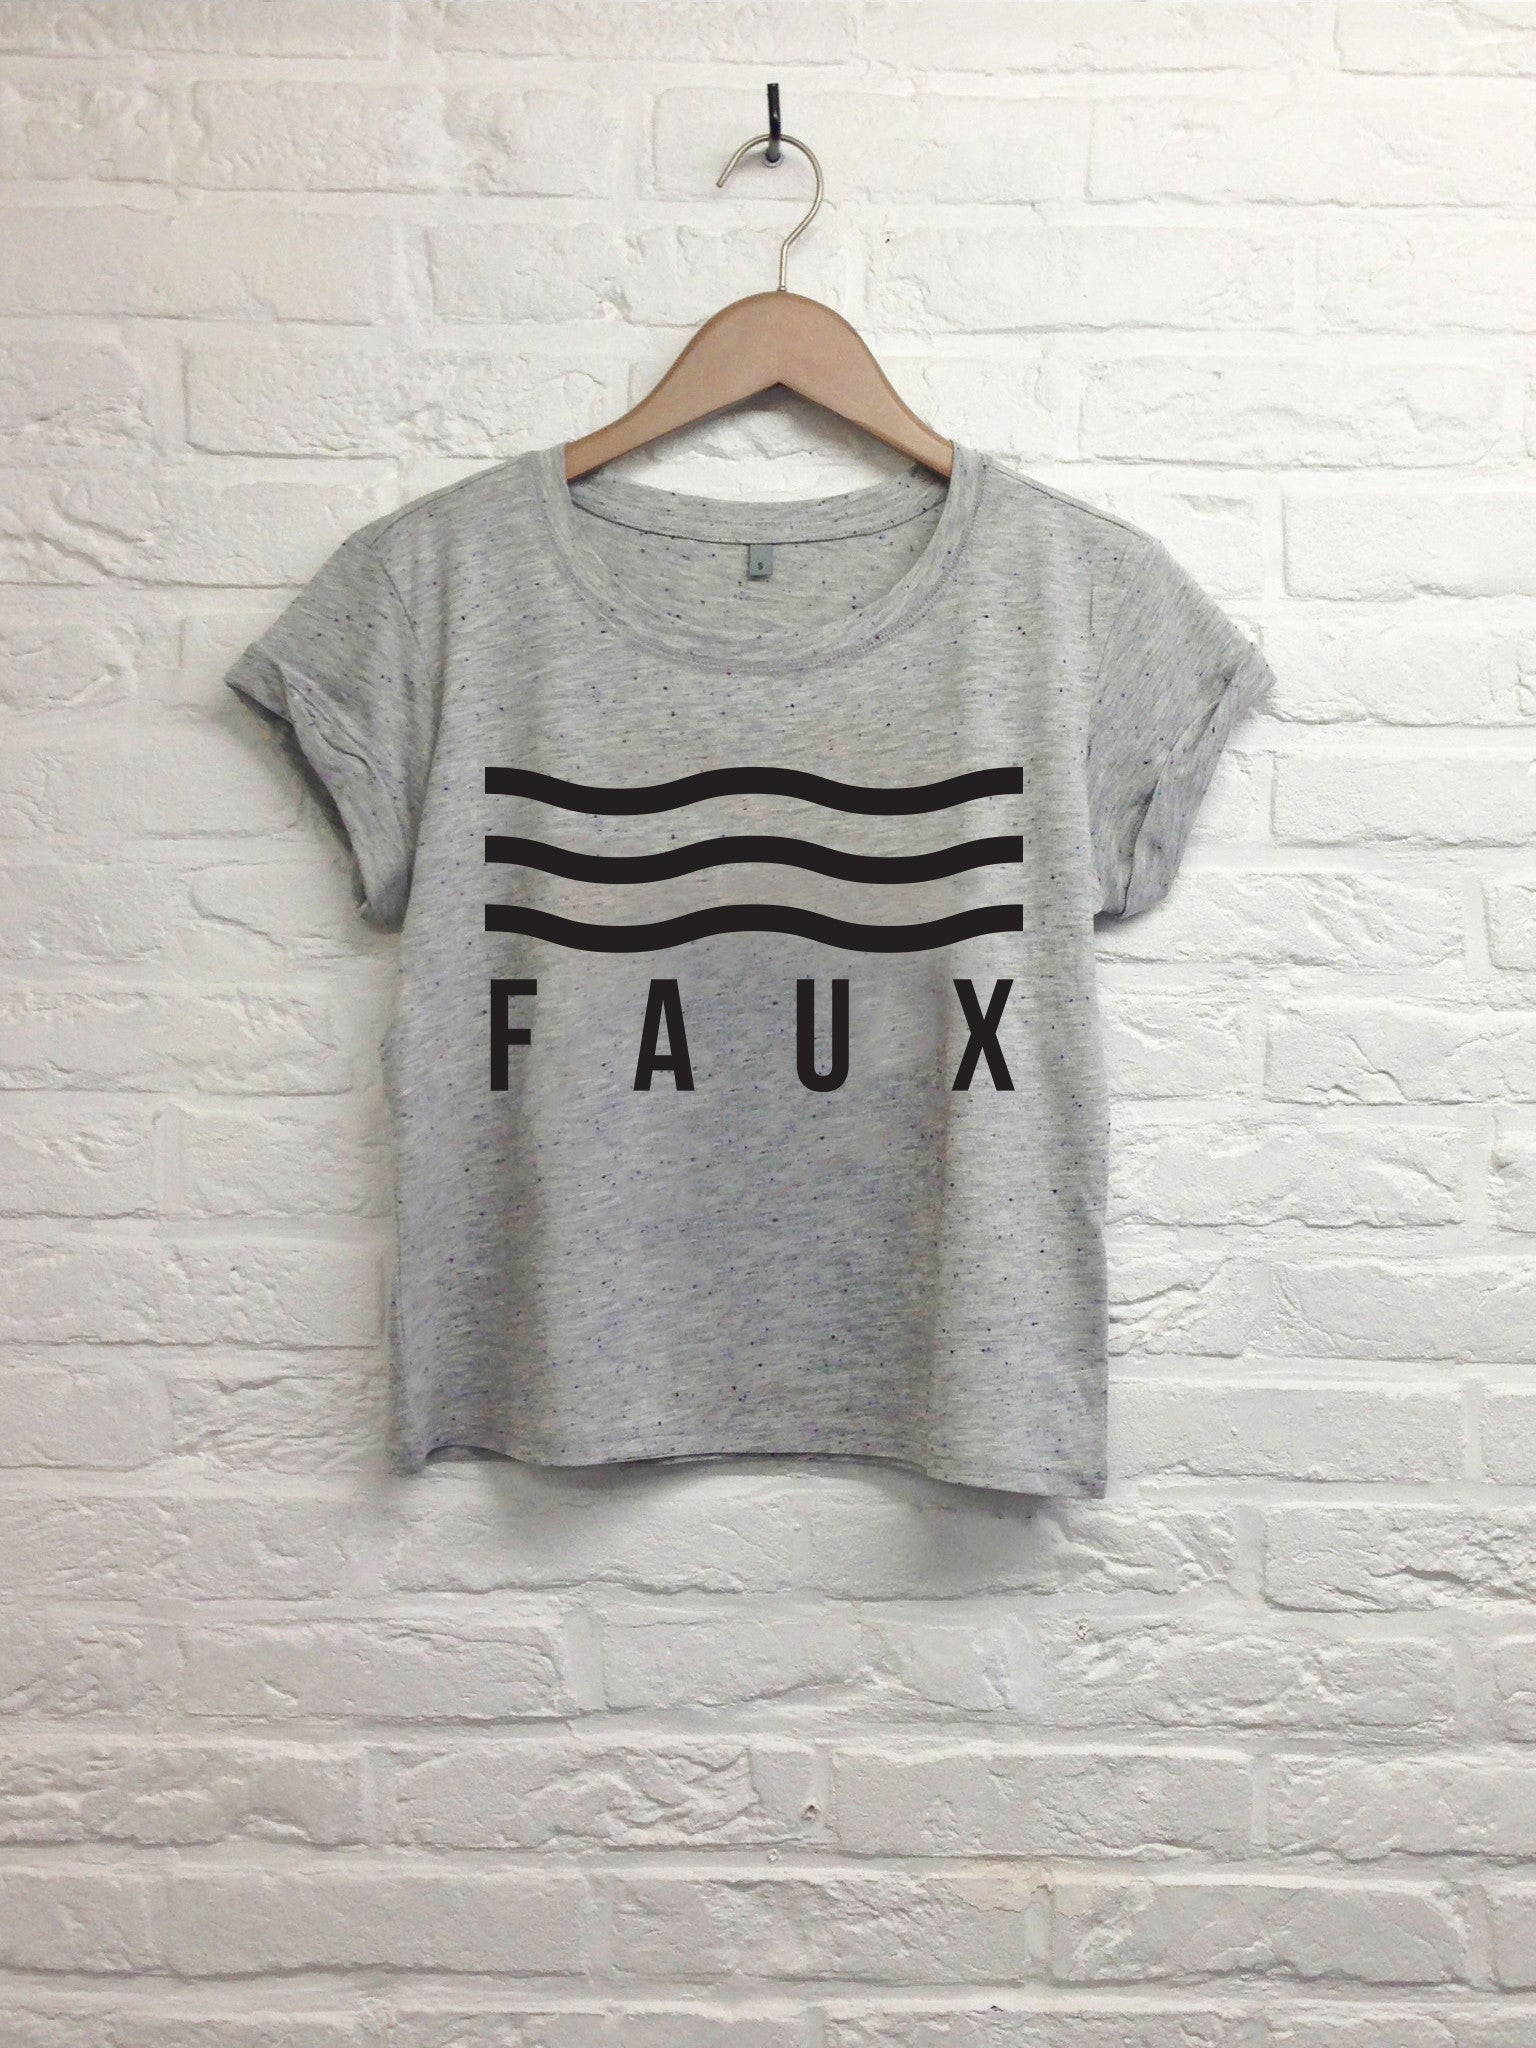 Faux vague - Crop top speckled Grey